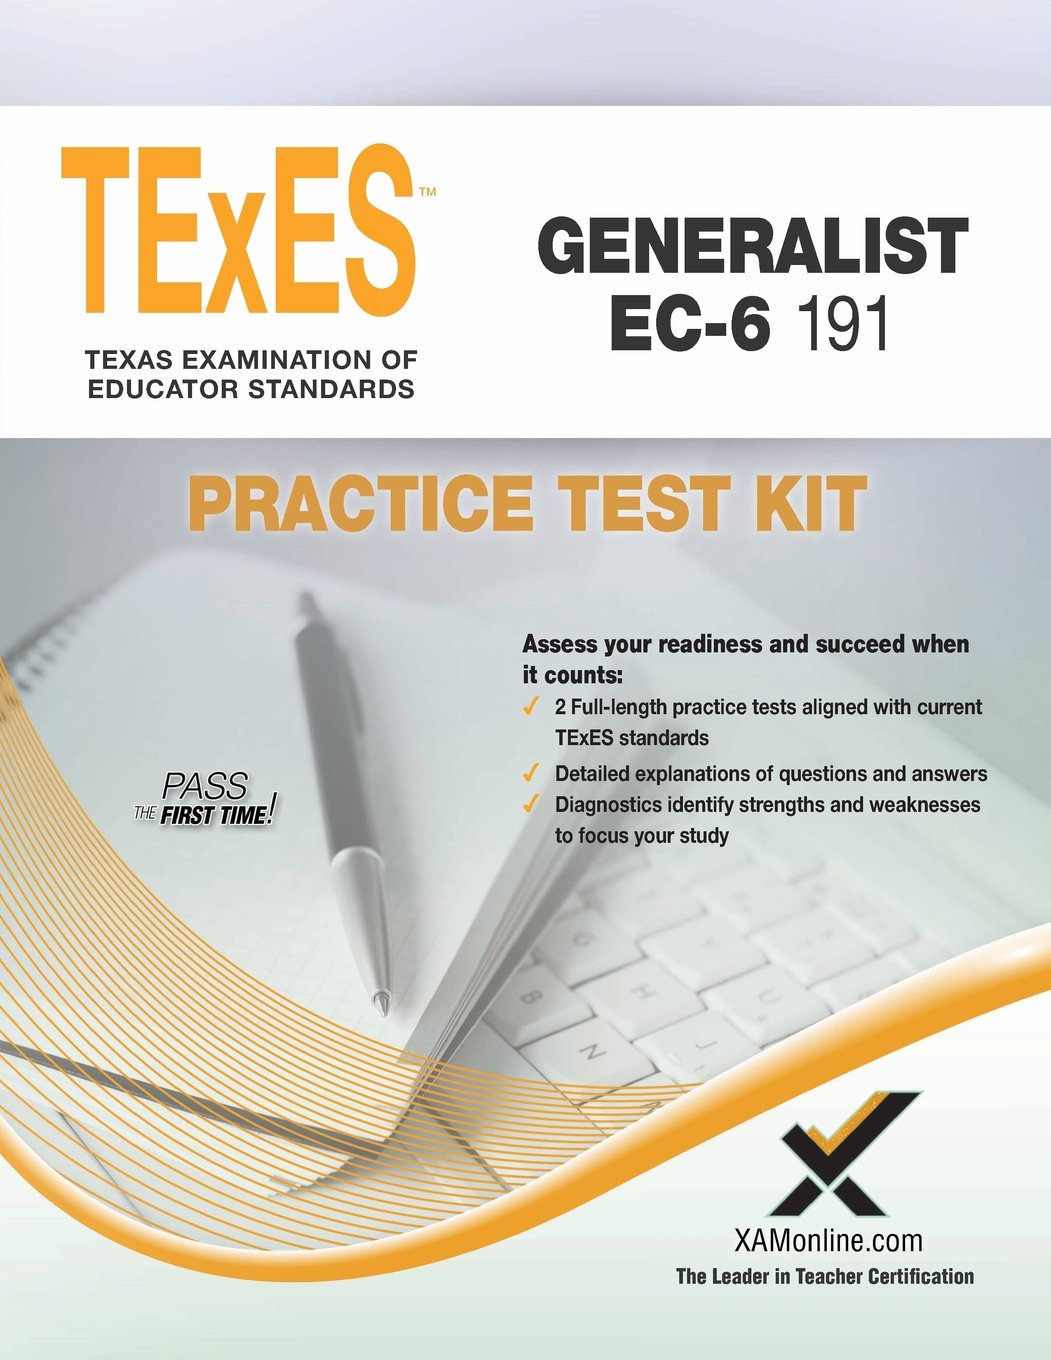 Passing the texes certification exam - Texes Generalist Ec 6 191 Practice Test Kit Sharon A Wynne 9781607873969 Amazon Com Books